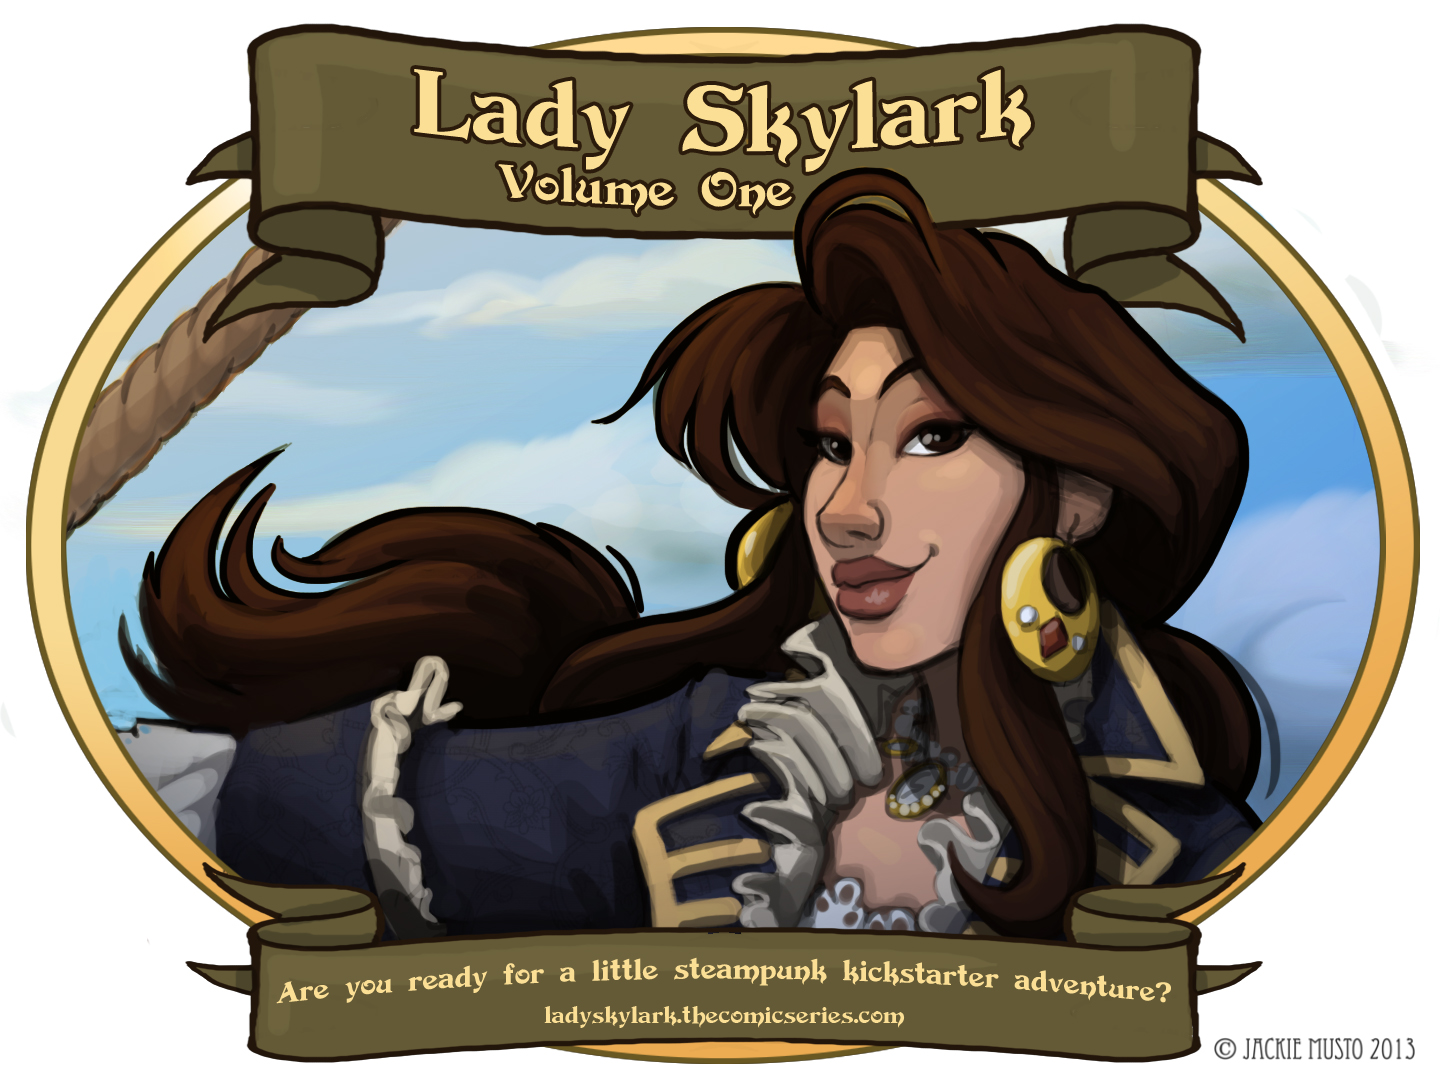 Lady Skylark, Volume One Kickstarter!